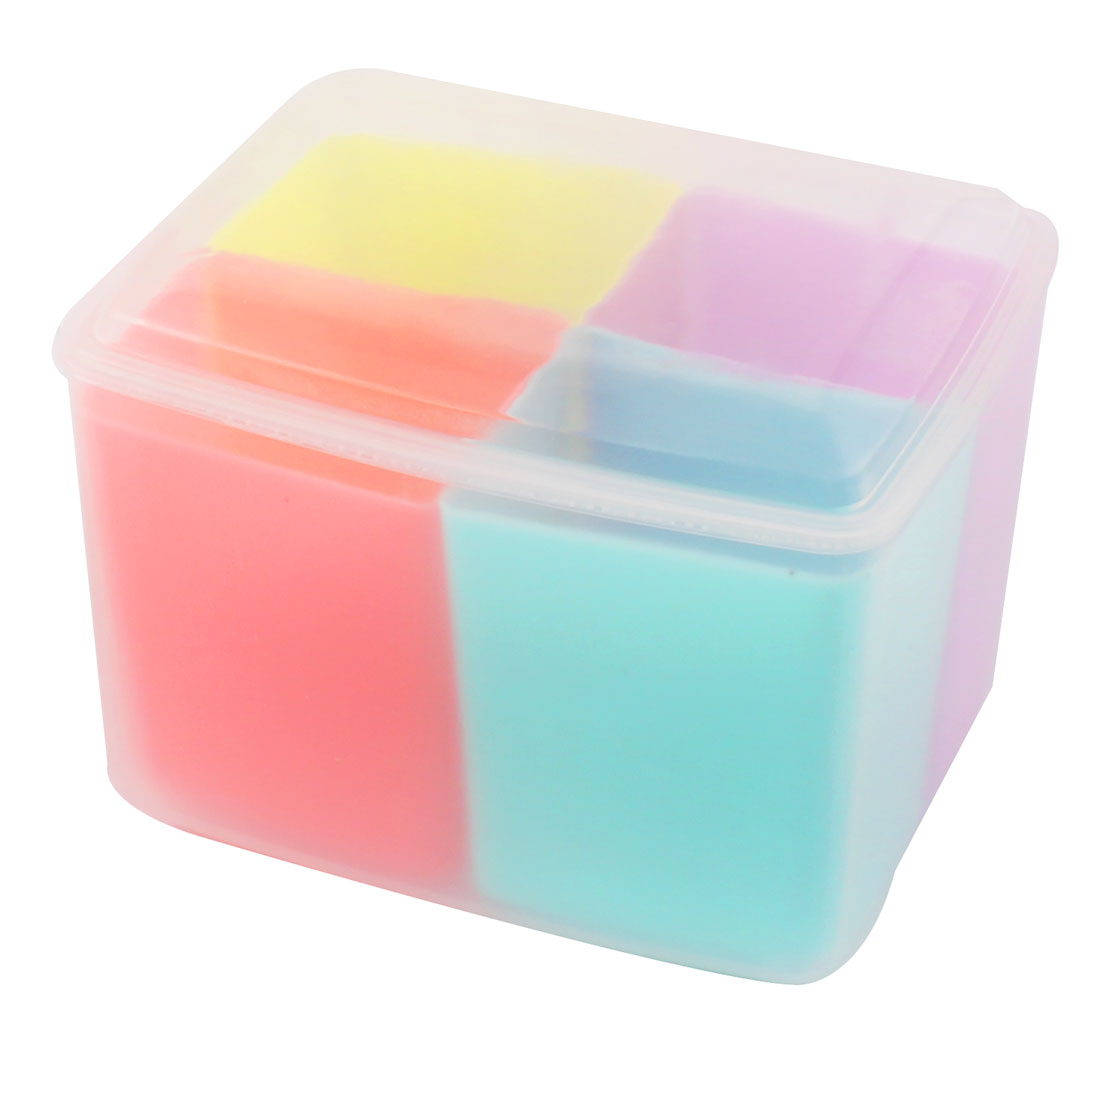 Household Kitchenware Plastic 4 Compartments Seasoning Box Spices Condiment Container Multicolor